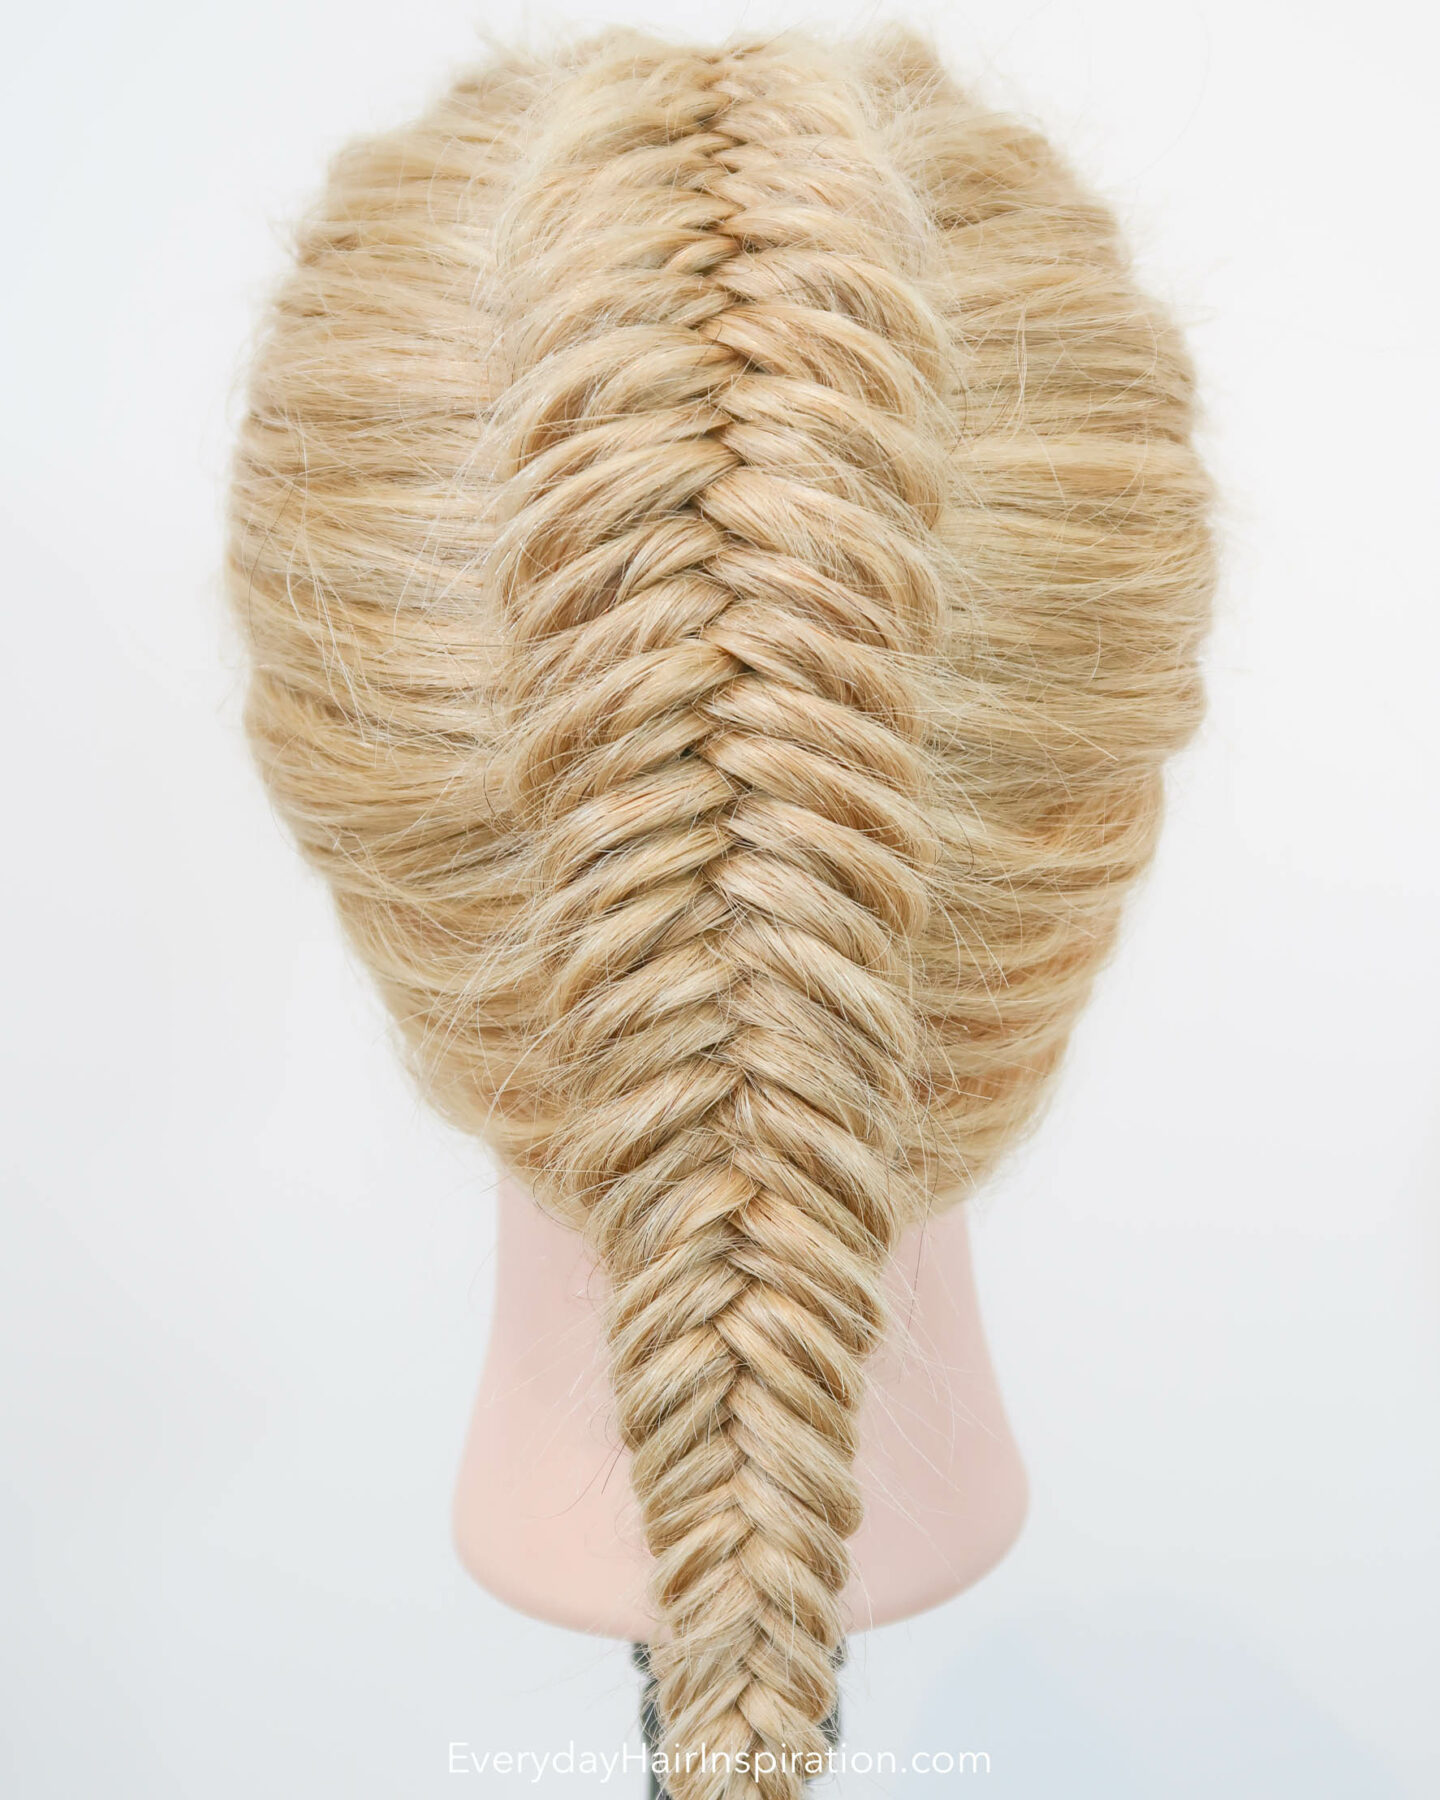 Blonde hairdresser doll seen from the back, with a single dutch fishtail braid in the hair